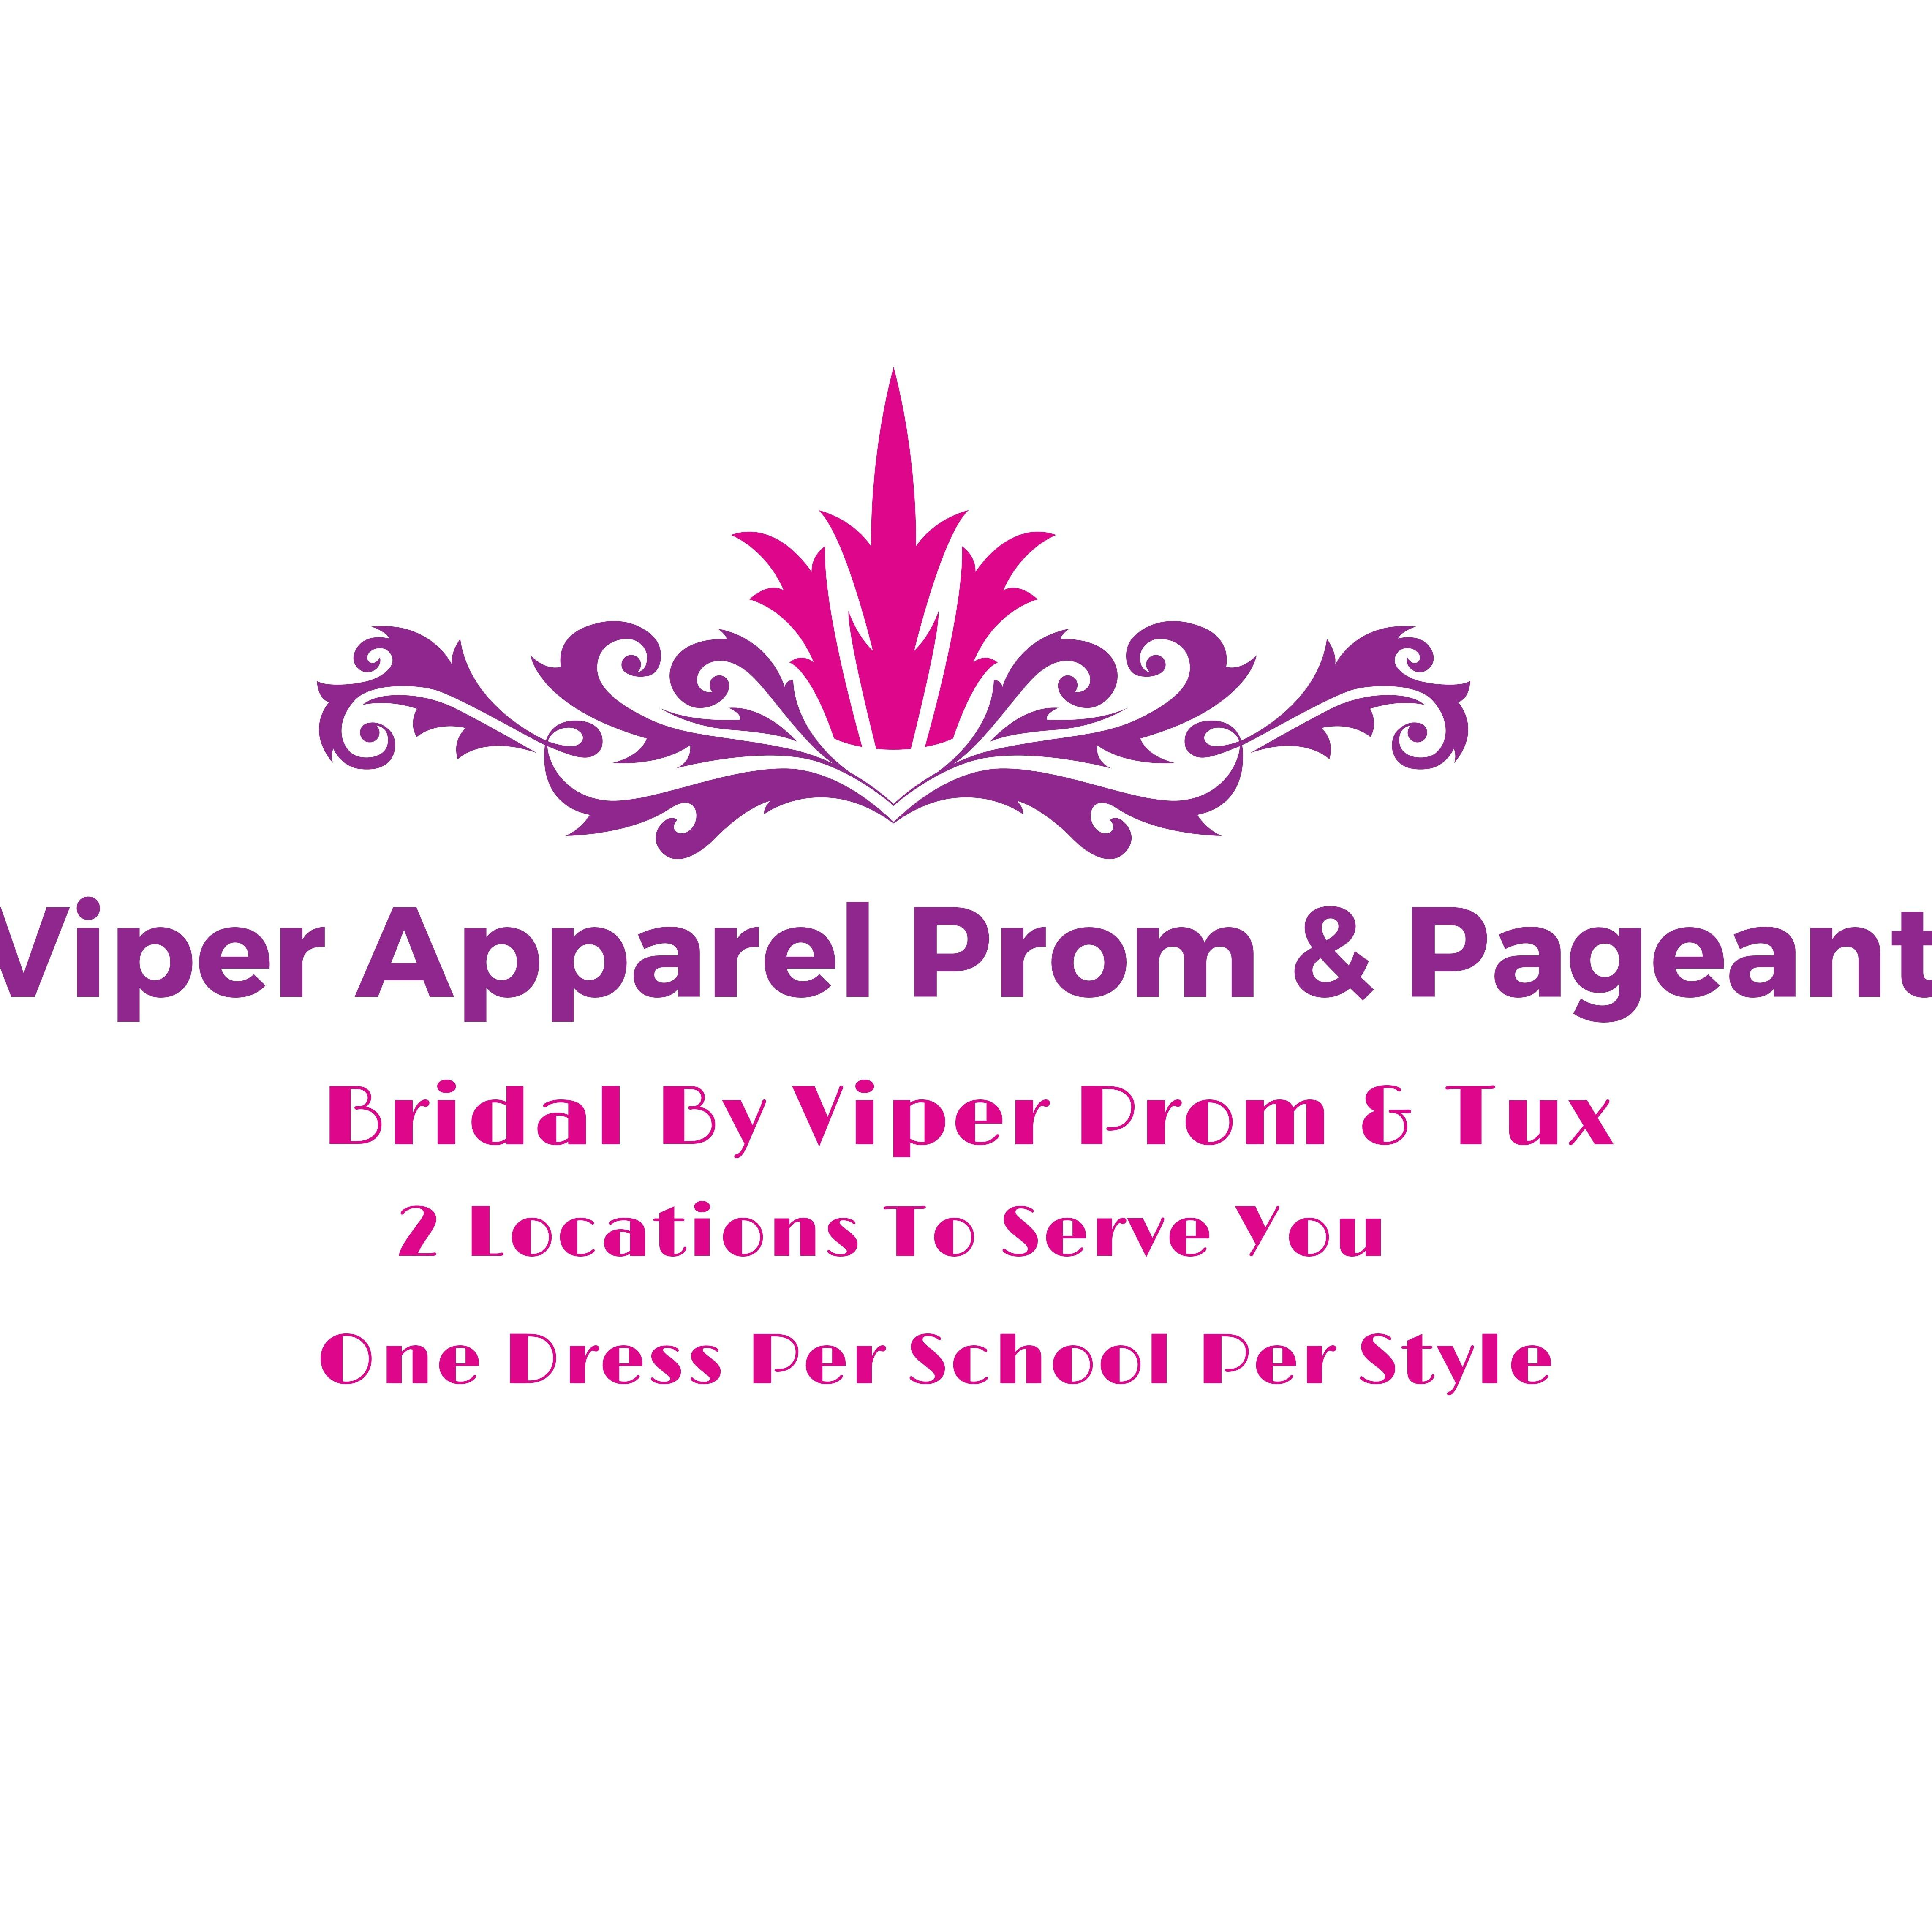 Bridal By  Viper Prom & Tux image 4